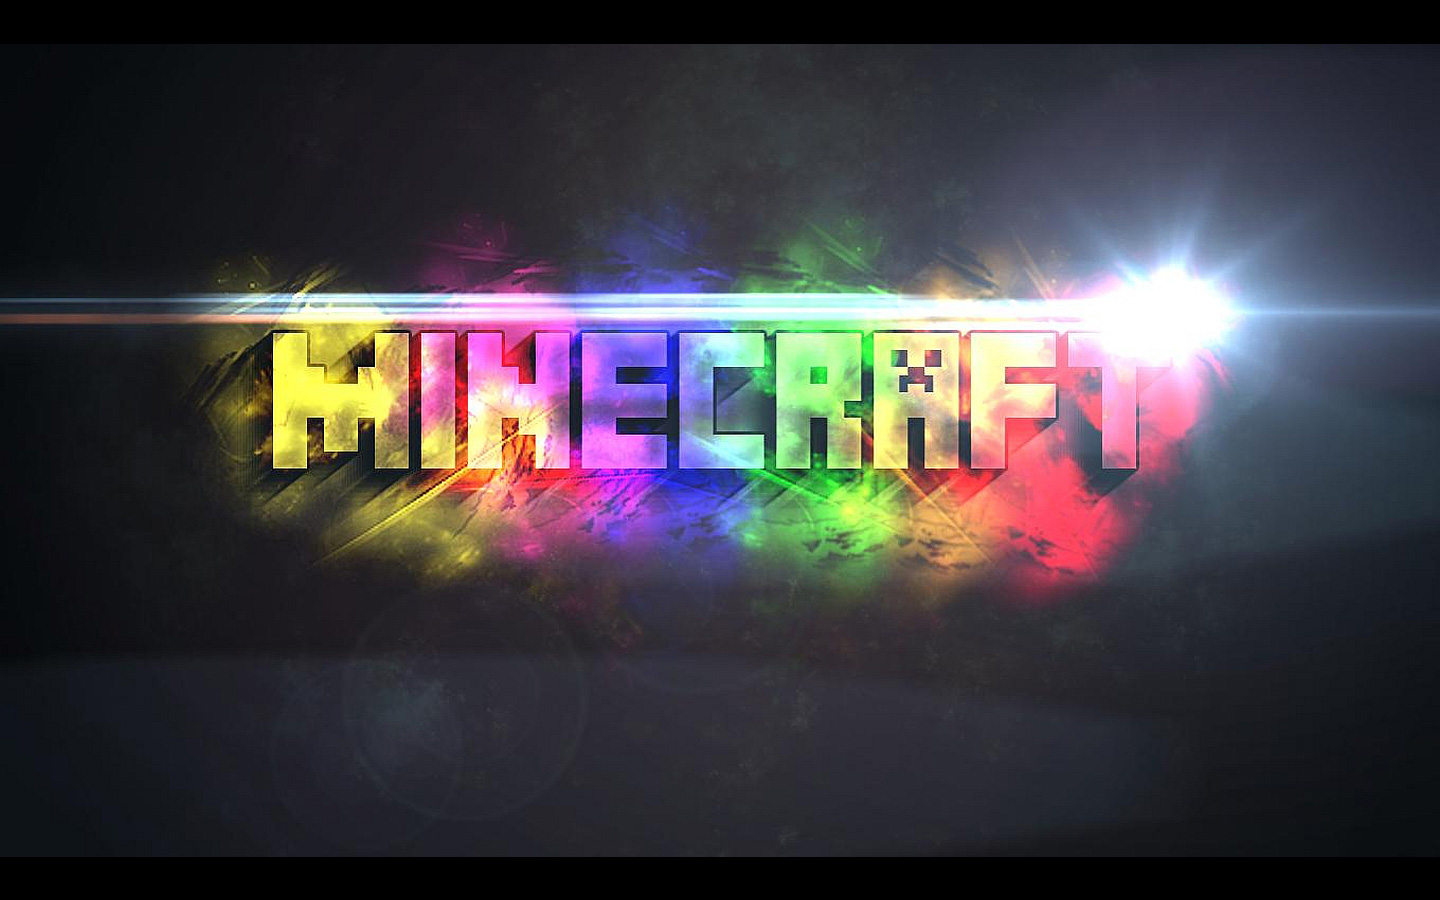 Amazing Wallpaper Minecraft Colorful - minecraft-wallpaper-01  Pic_88269.jpg